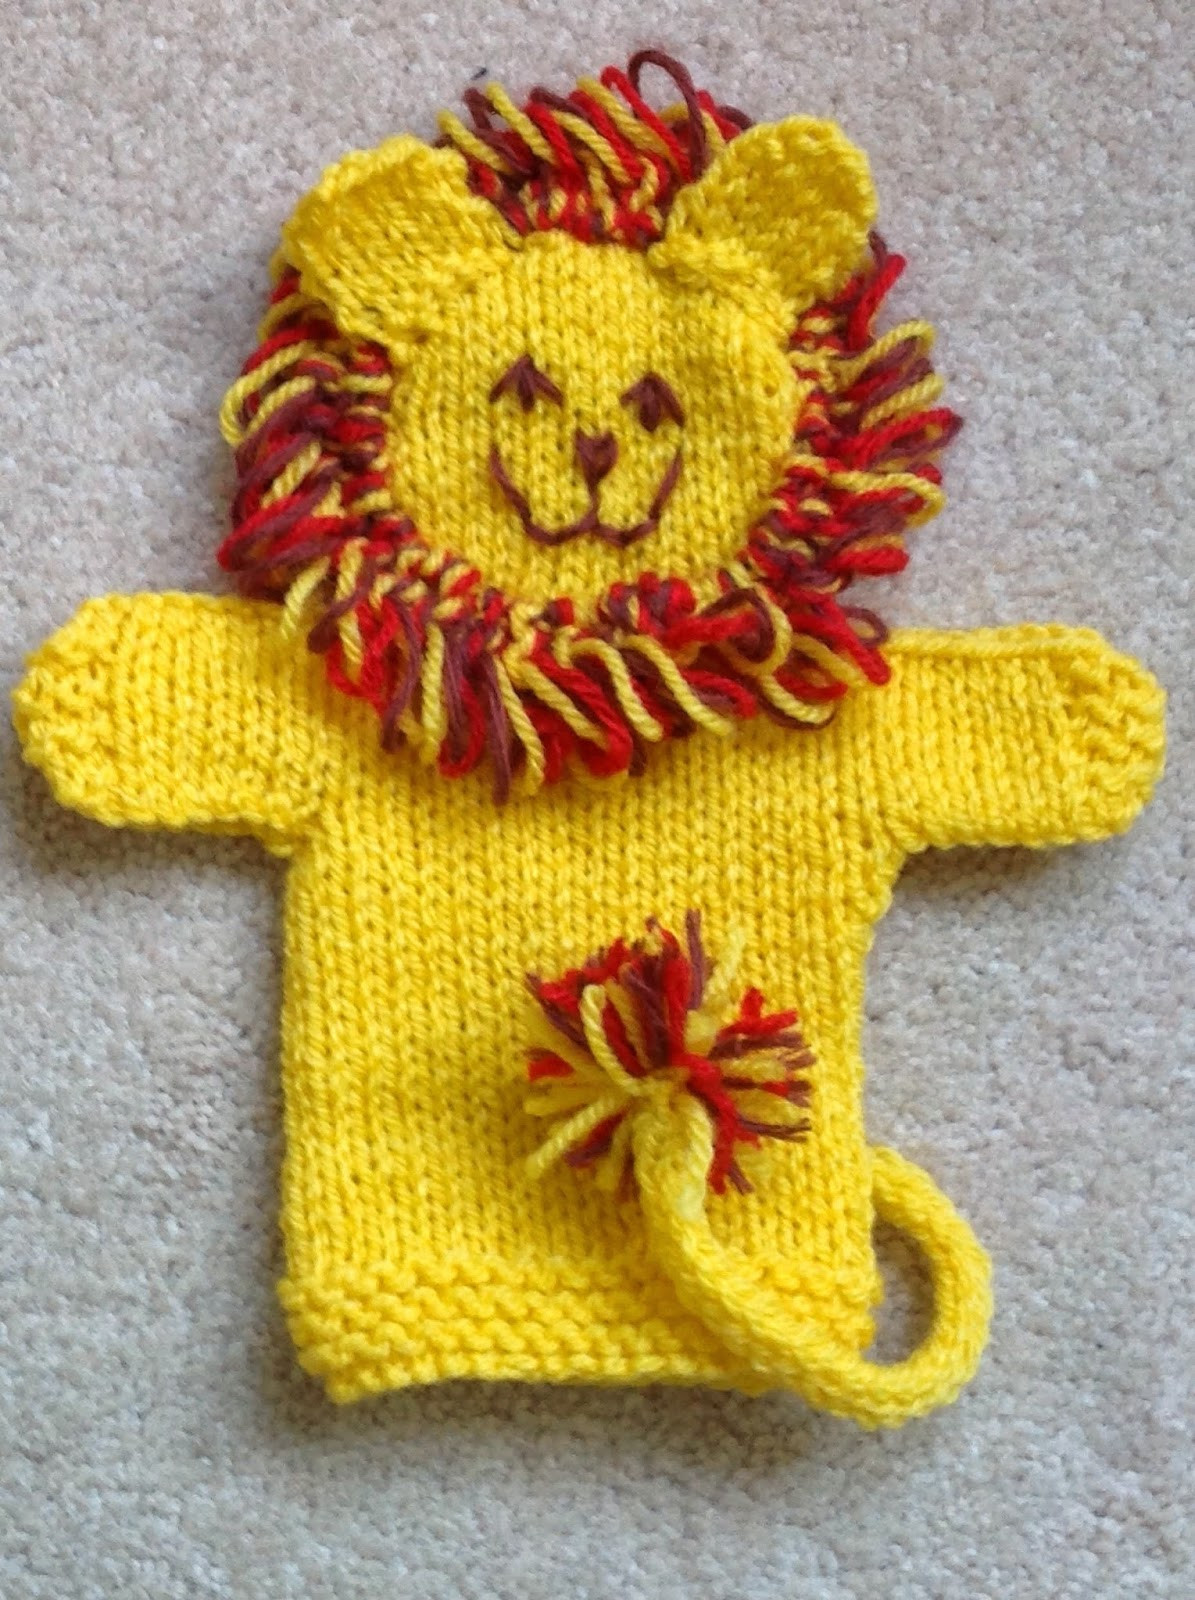 New Musings Of the Puppet Lady Lion Puppet Knitting Pattern Knitting Ideas Of Superb 43 Images Knitting Ideas